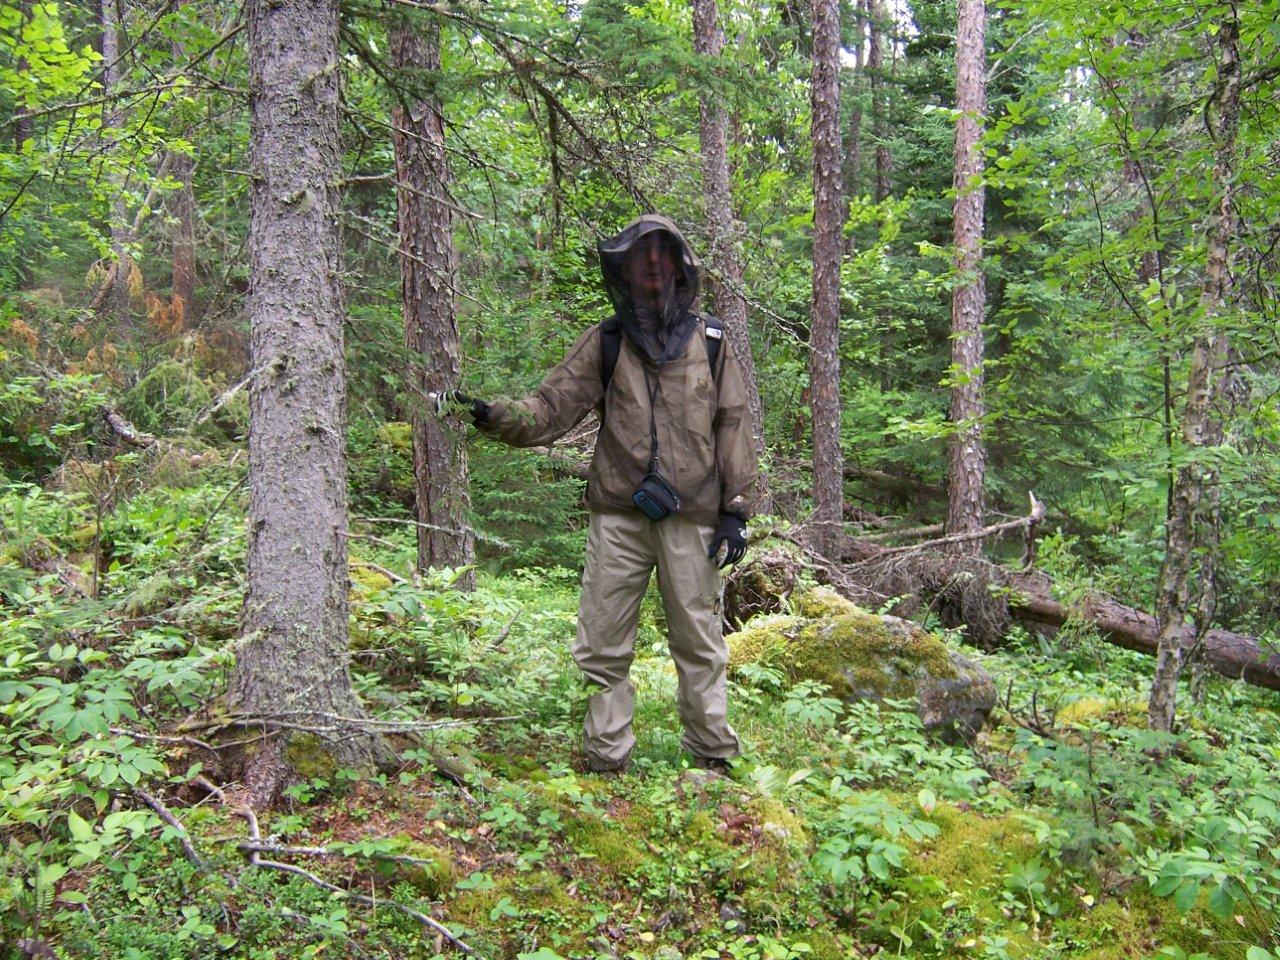 Zeilig decked out in mosquito-blackfly netting during a day hike in the boreal forest.